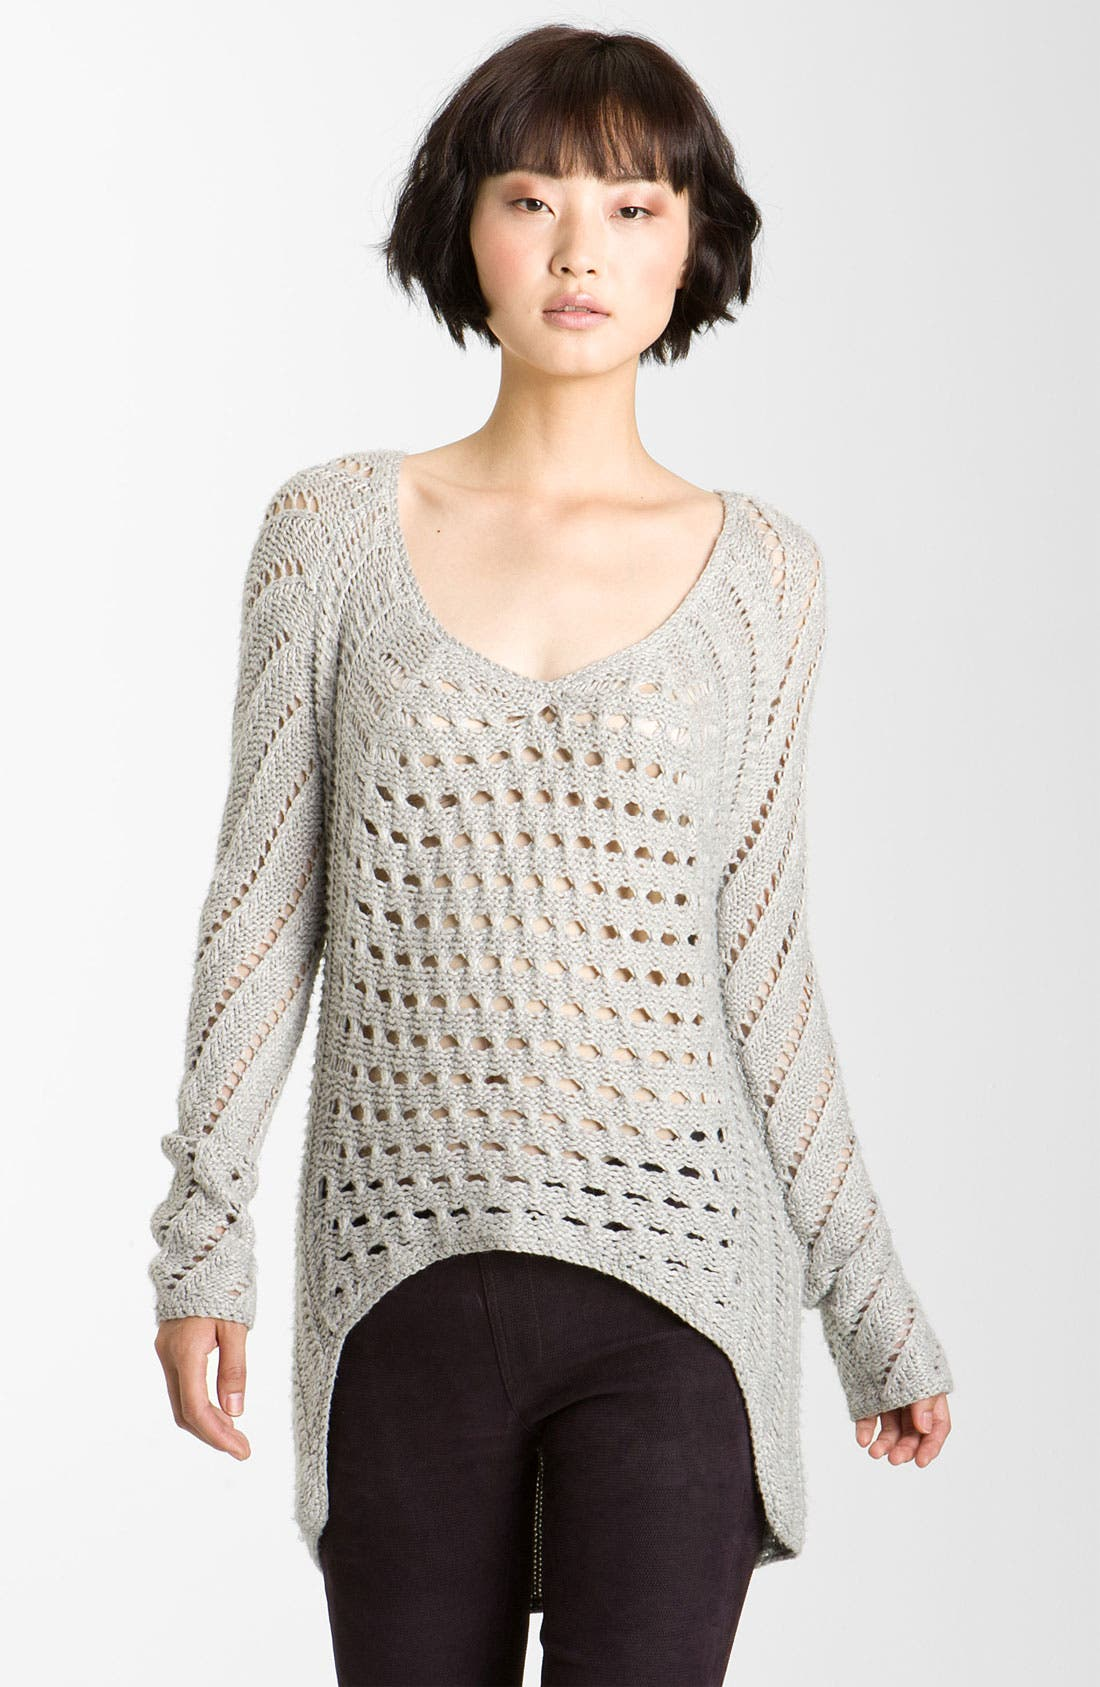 Alternate Image 1 Selected - Helmut Lang 'Inherent Texture' Knit Sweater